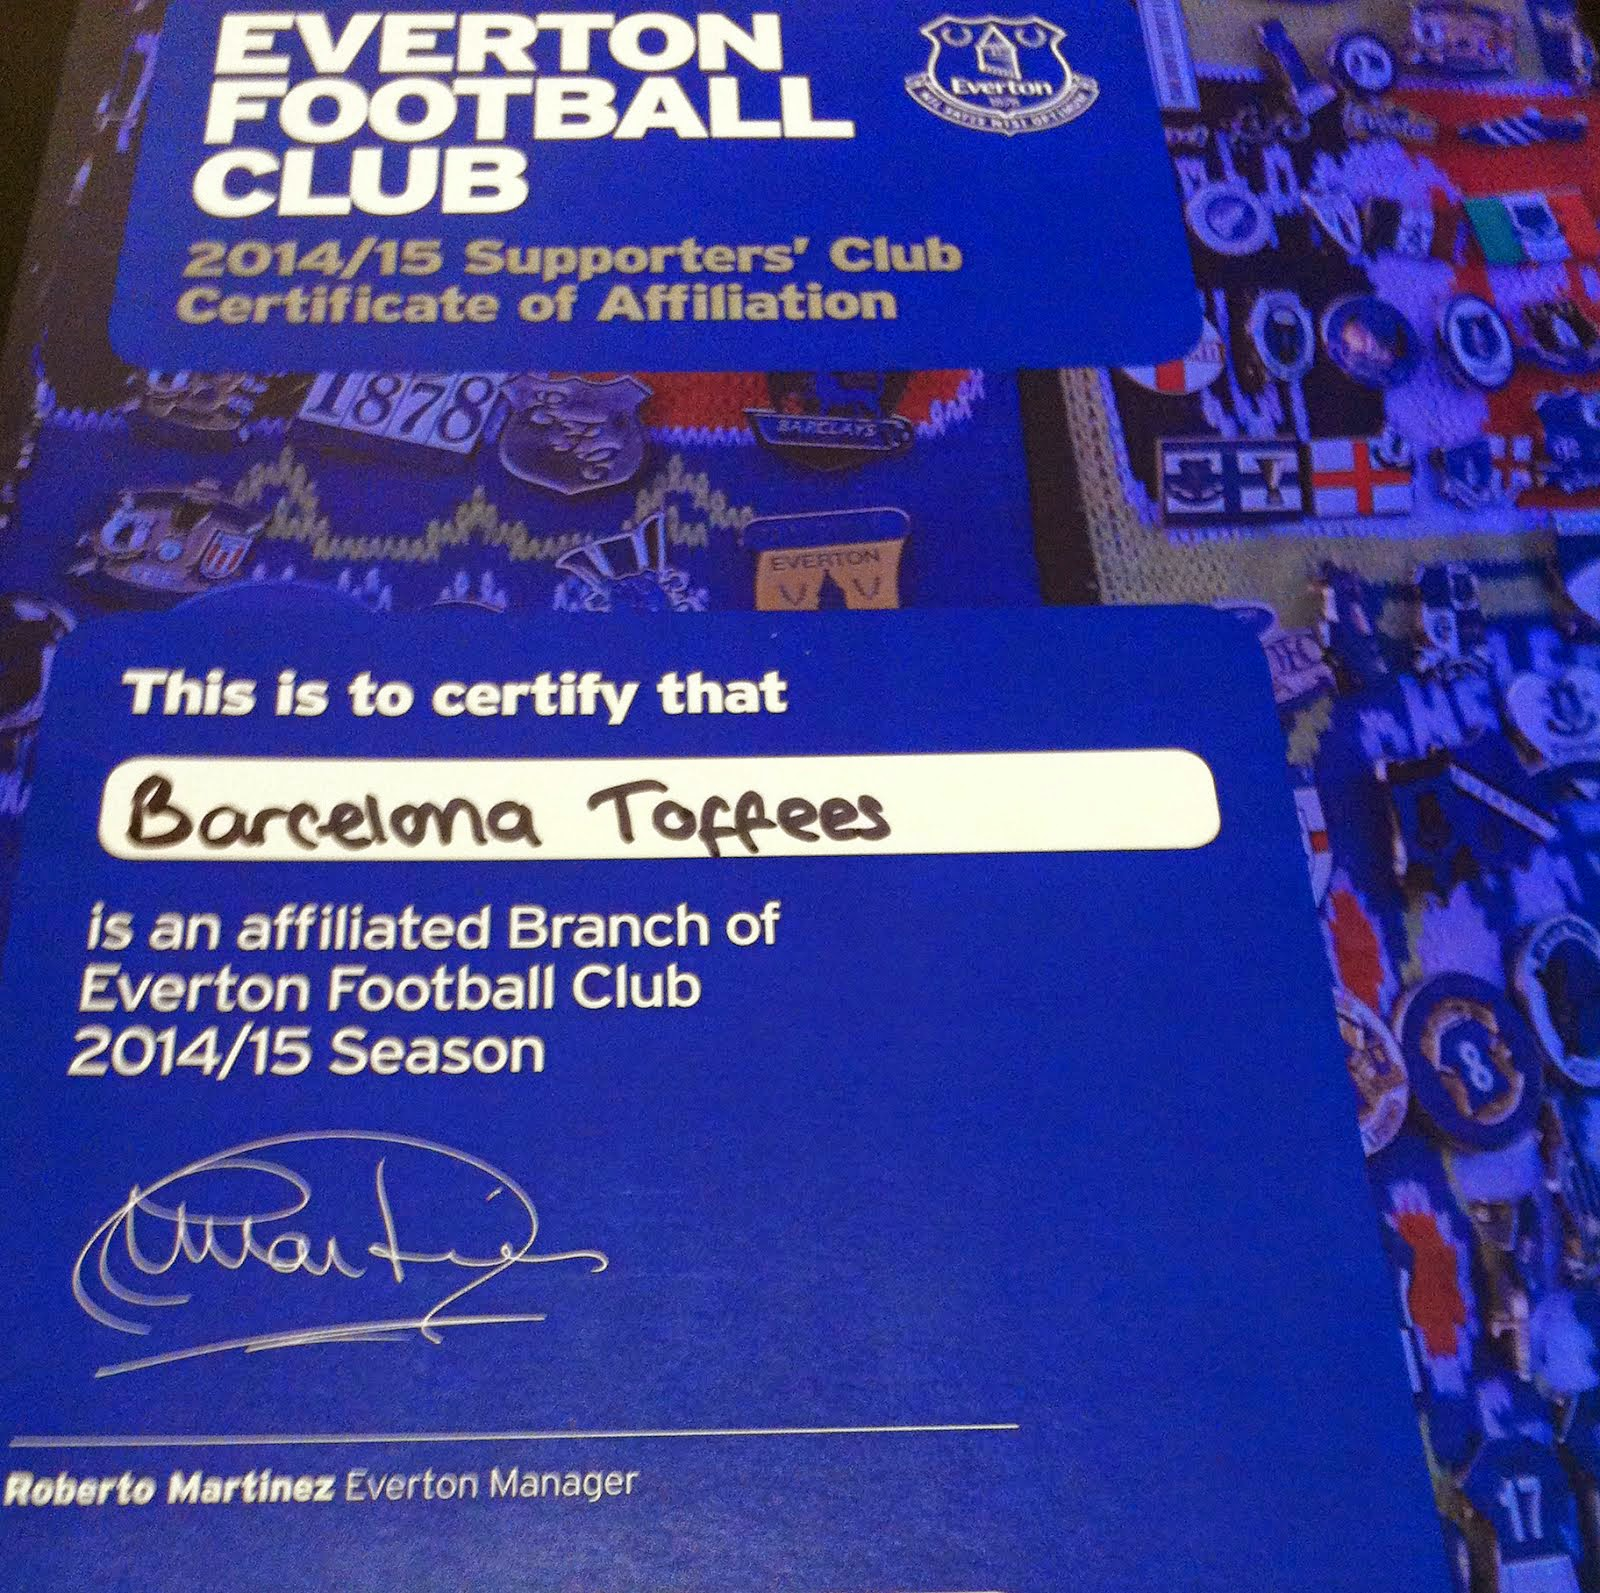 We're an affiliated Branch of Everton FC